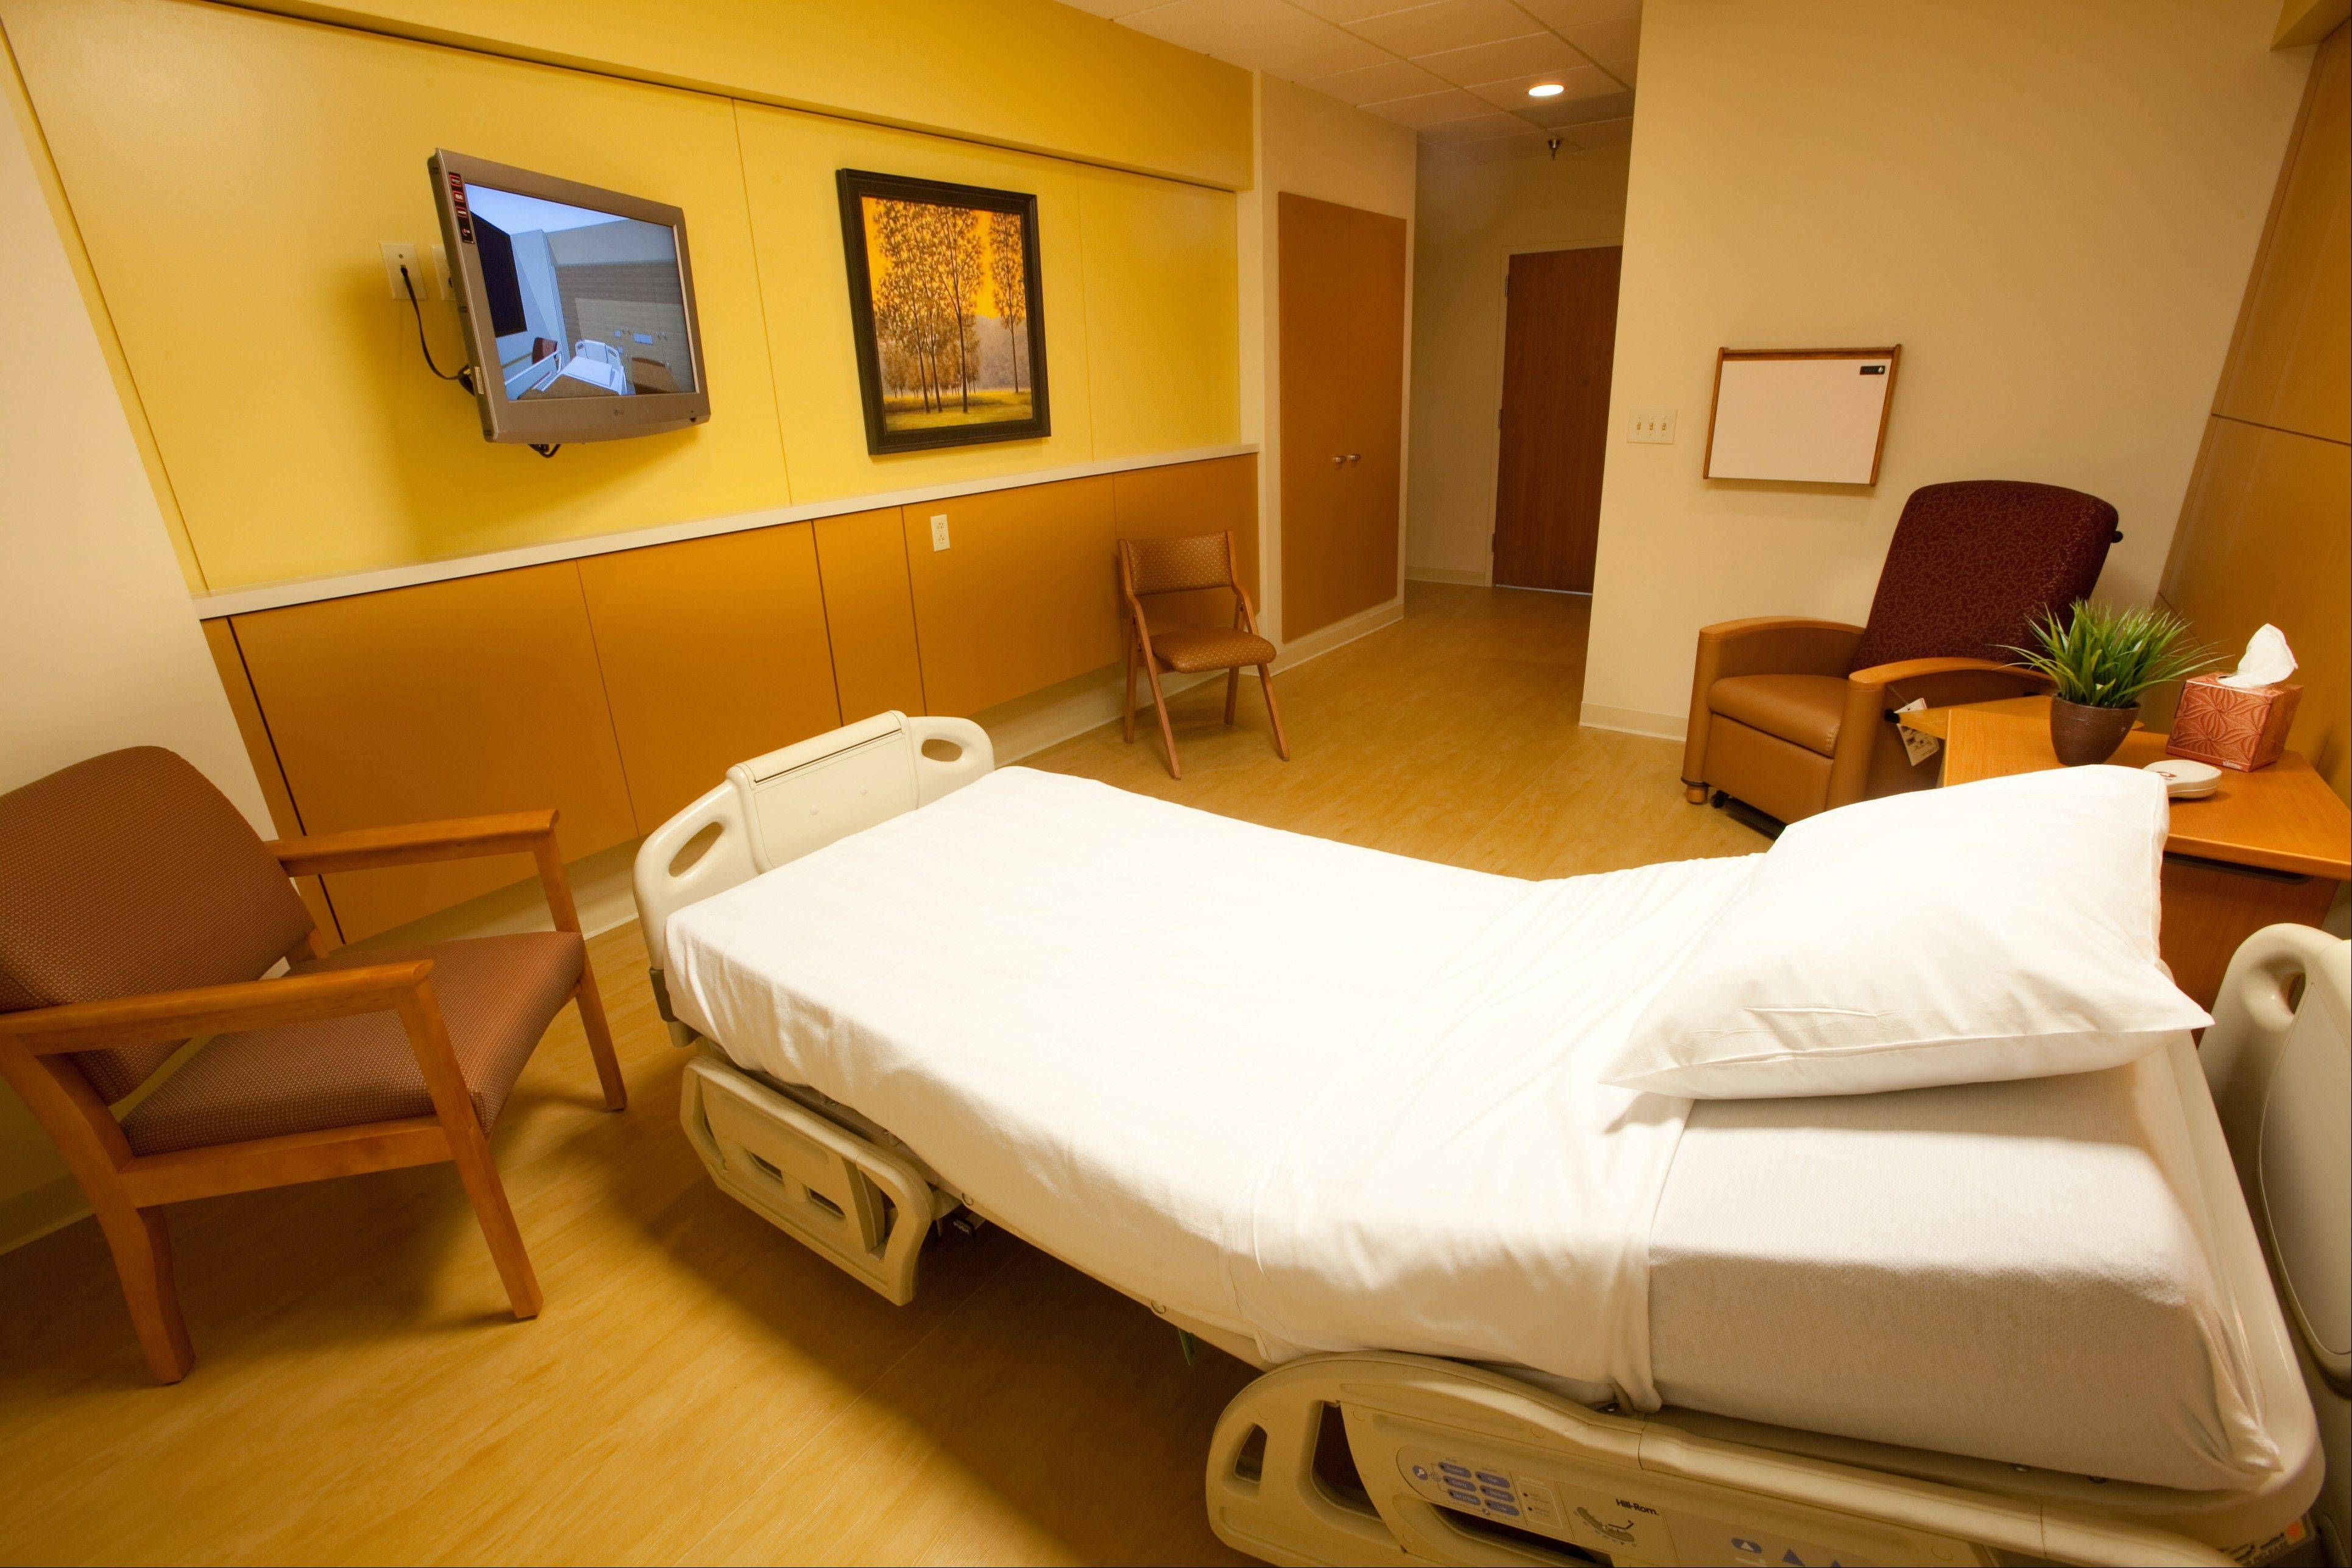 Renovated patient rooms at Provena Mercy Medical Center in Aurora are 218-square-foot spaces featuring flat screen TVs, private bathrooms and single-patient occupancy.